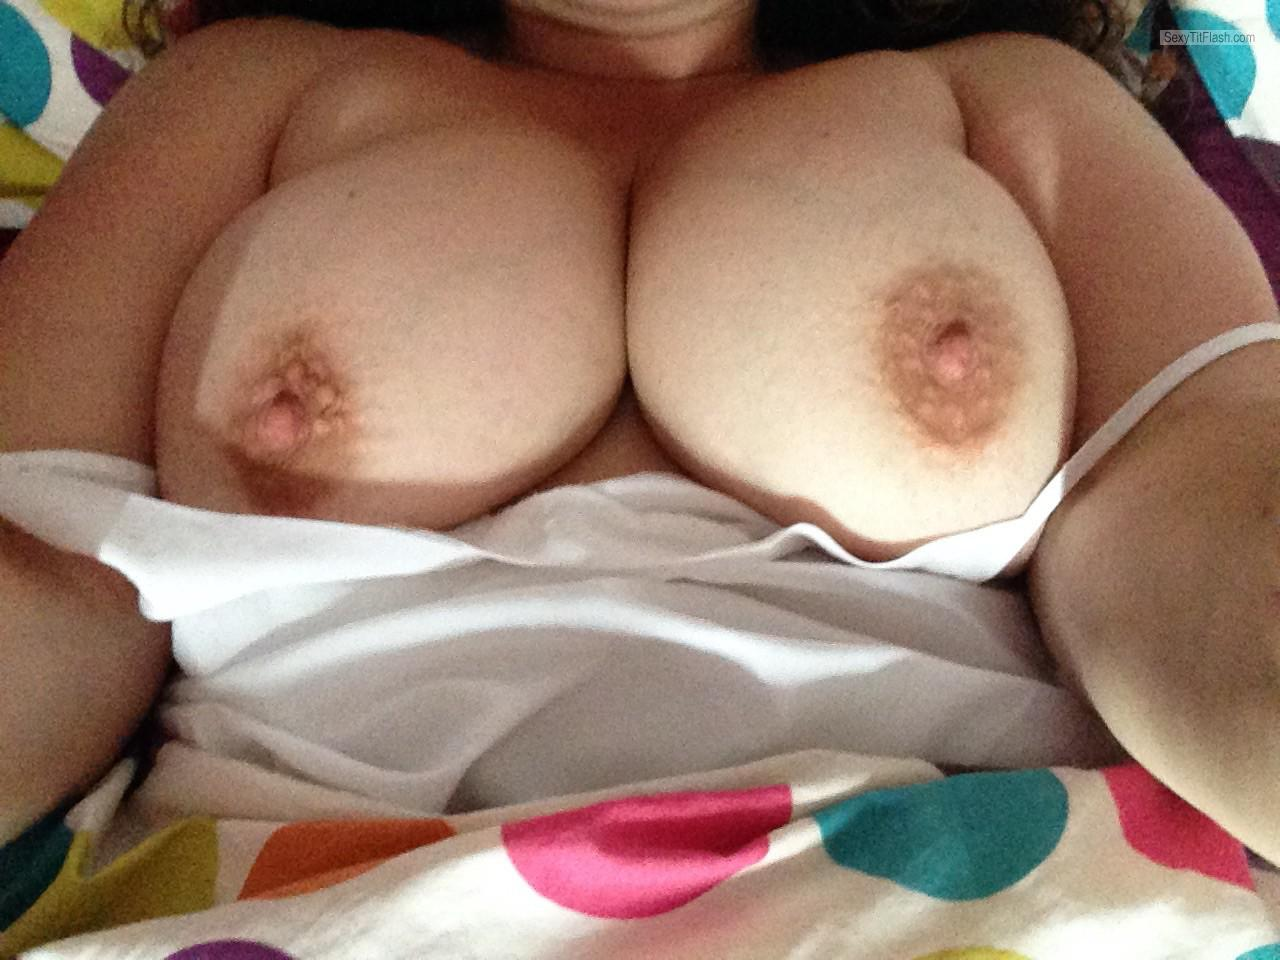 Big Tits Of My Wife Selfie by Wife's Tits